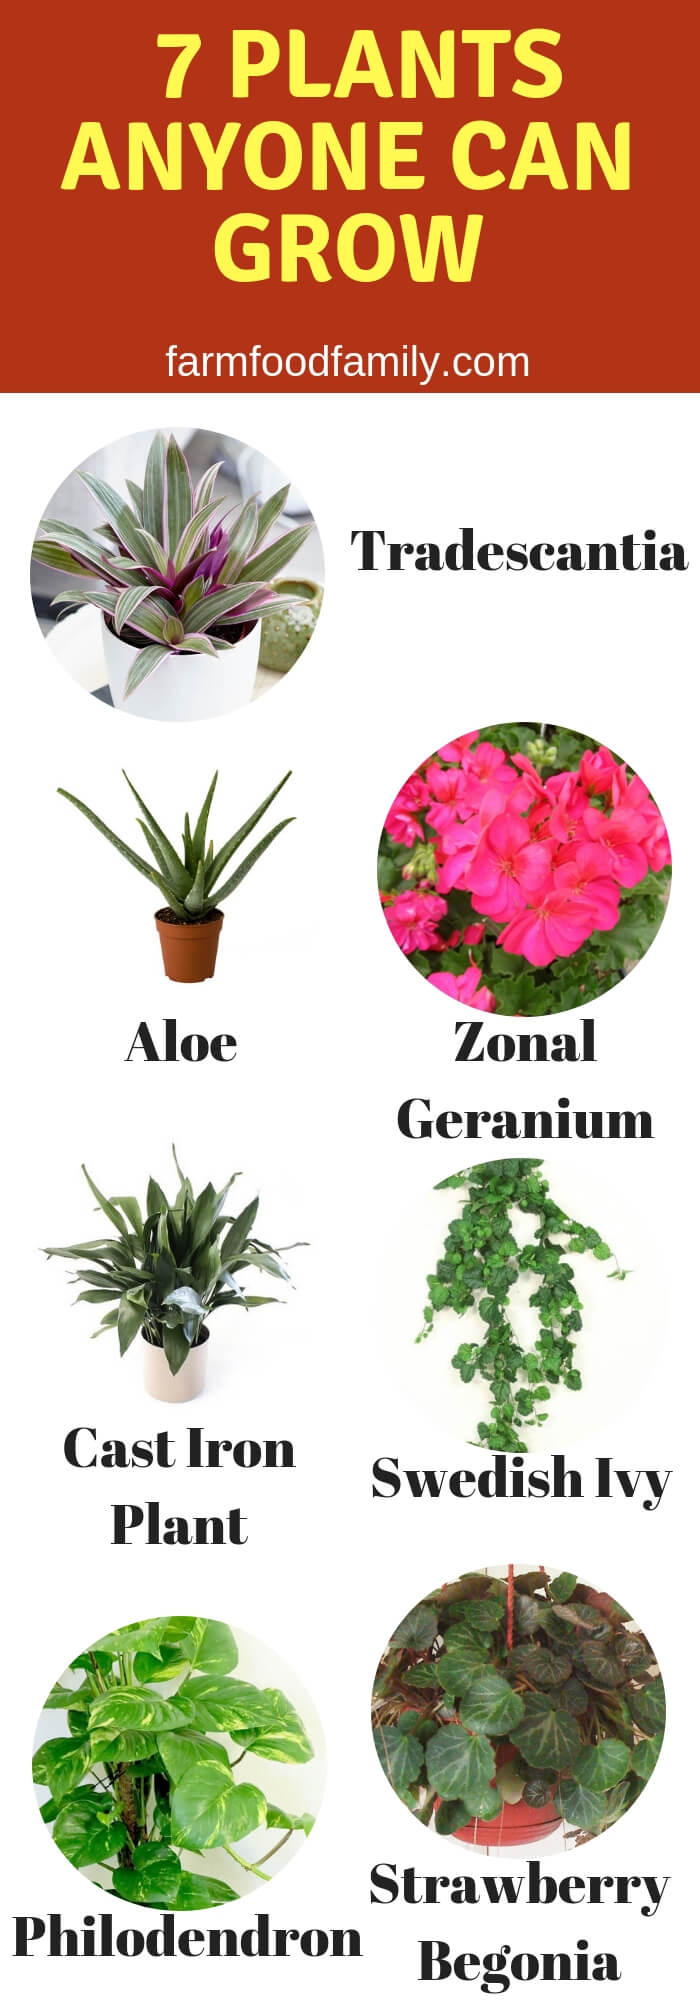 Infographic 7 Plants Anyone Can Grow